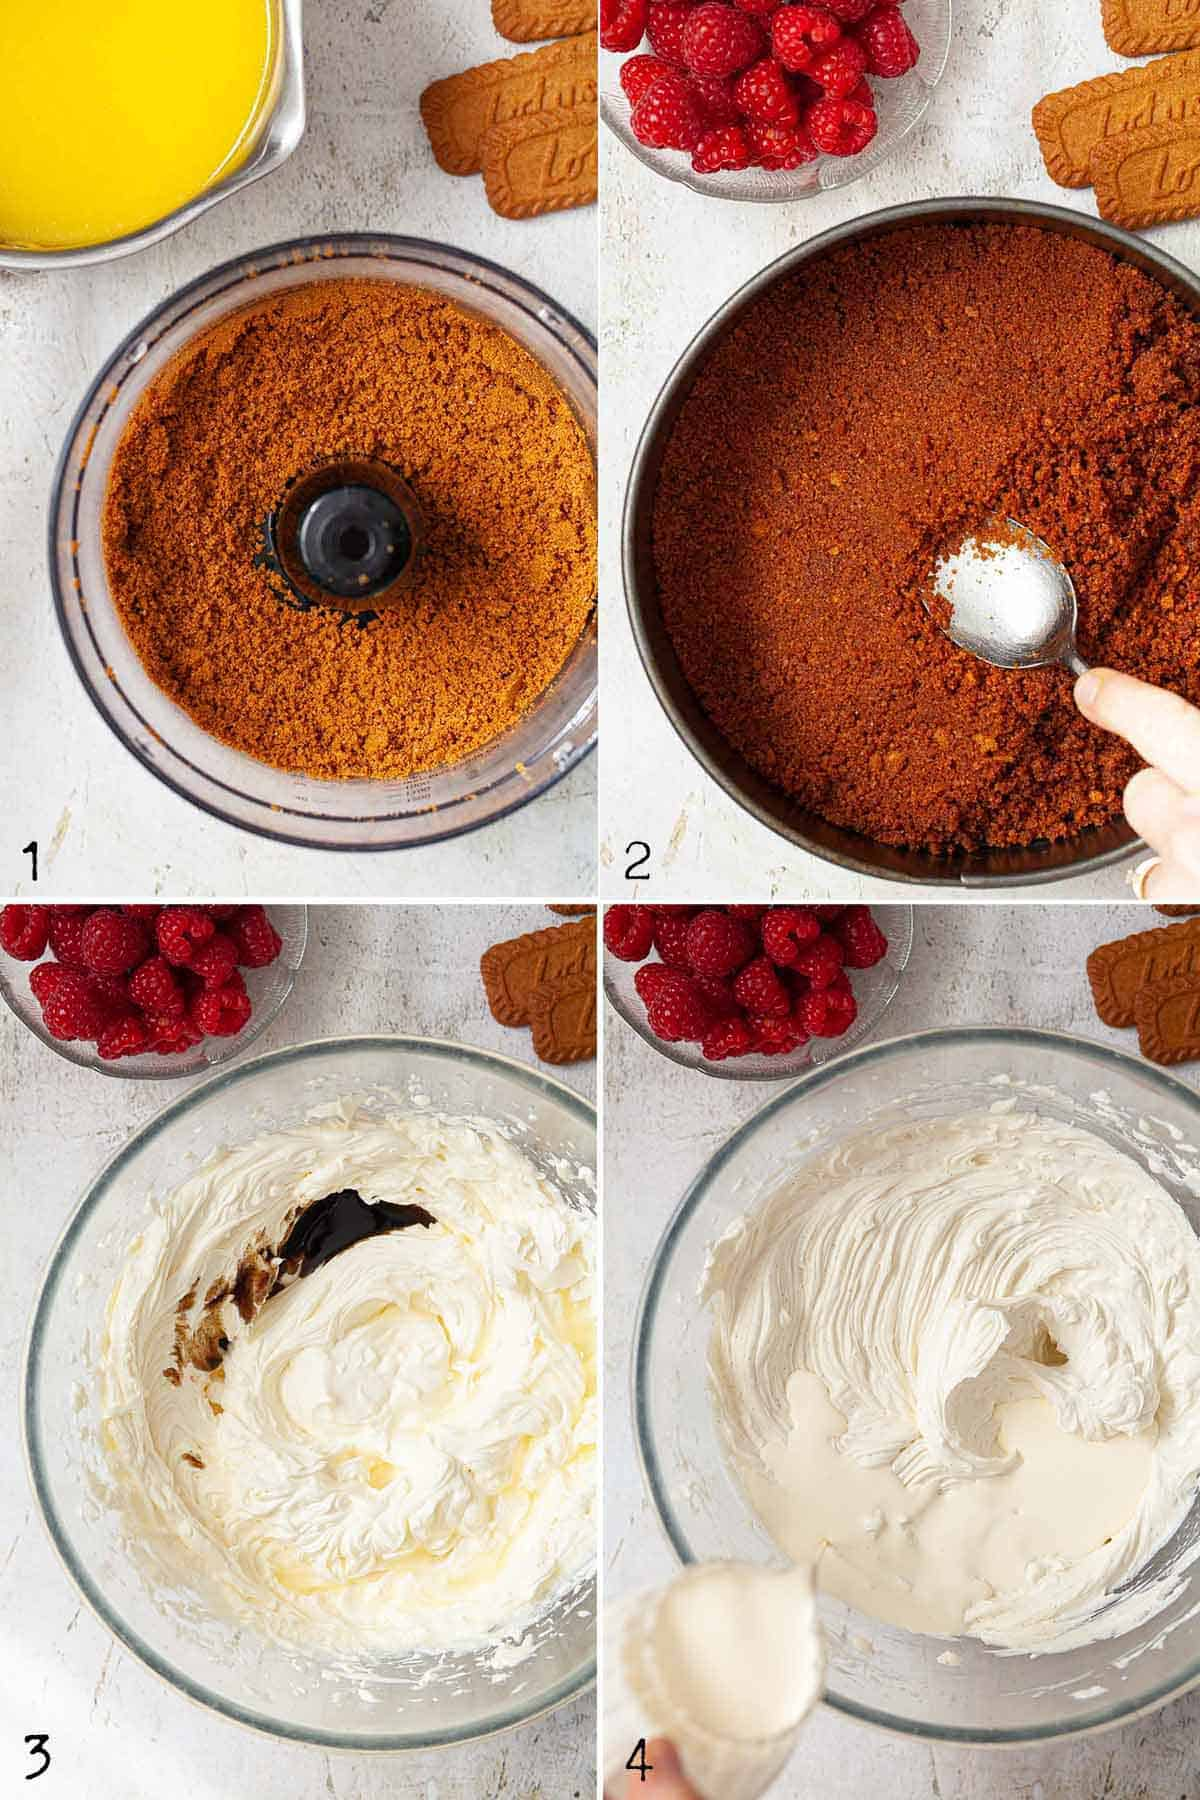 Image collage showing a biscuit crumb base and a cream cheese filling being mixed